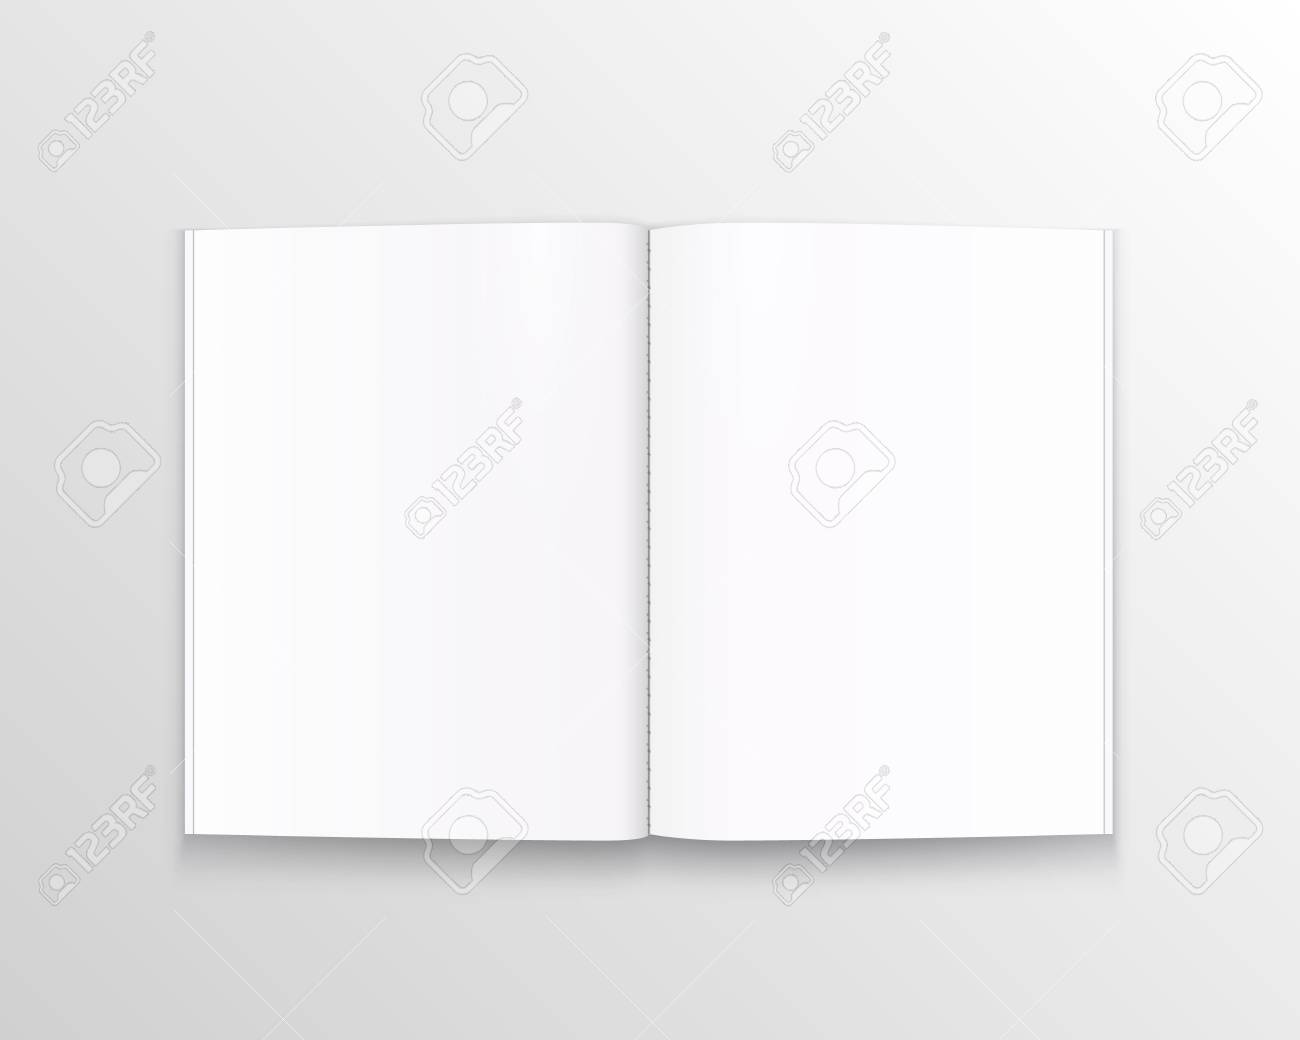 Open paper book with text art. Vector illustration - 128488877